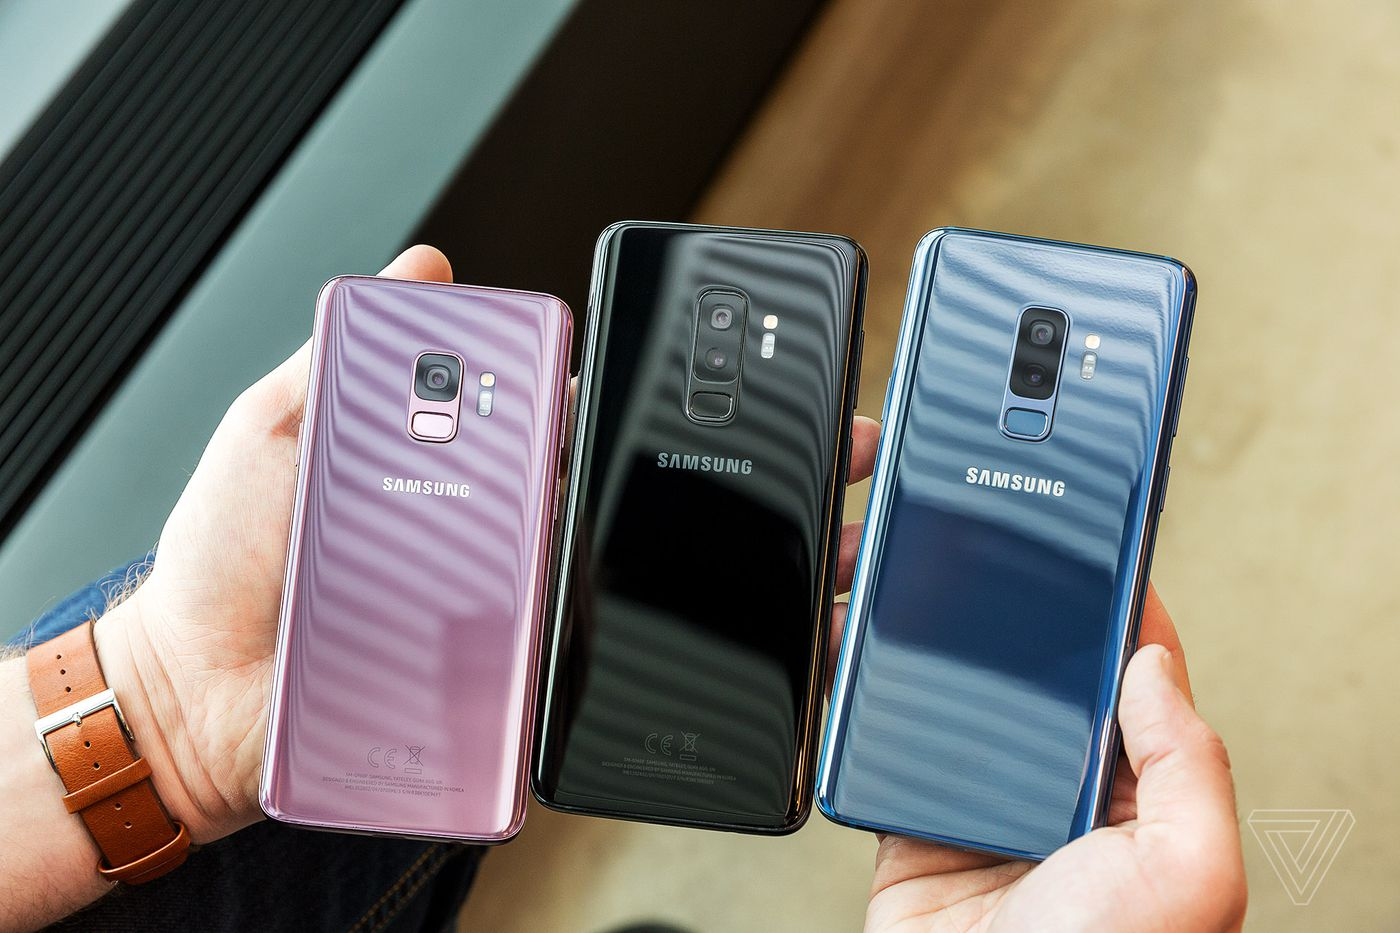 Samsung Galaxy S9 and S9 Plus: the best and worst features